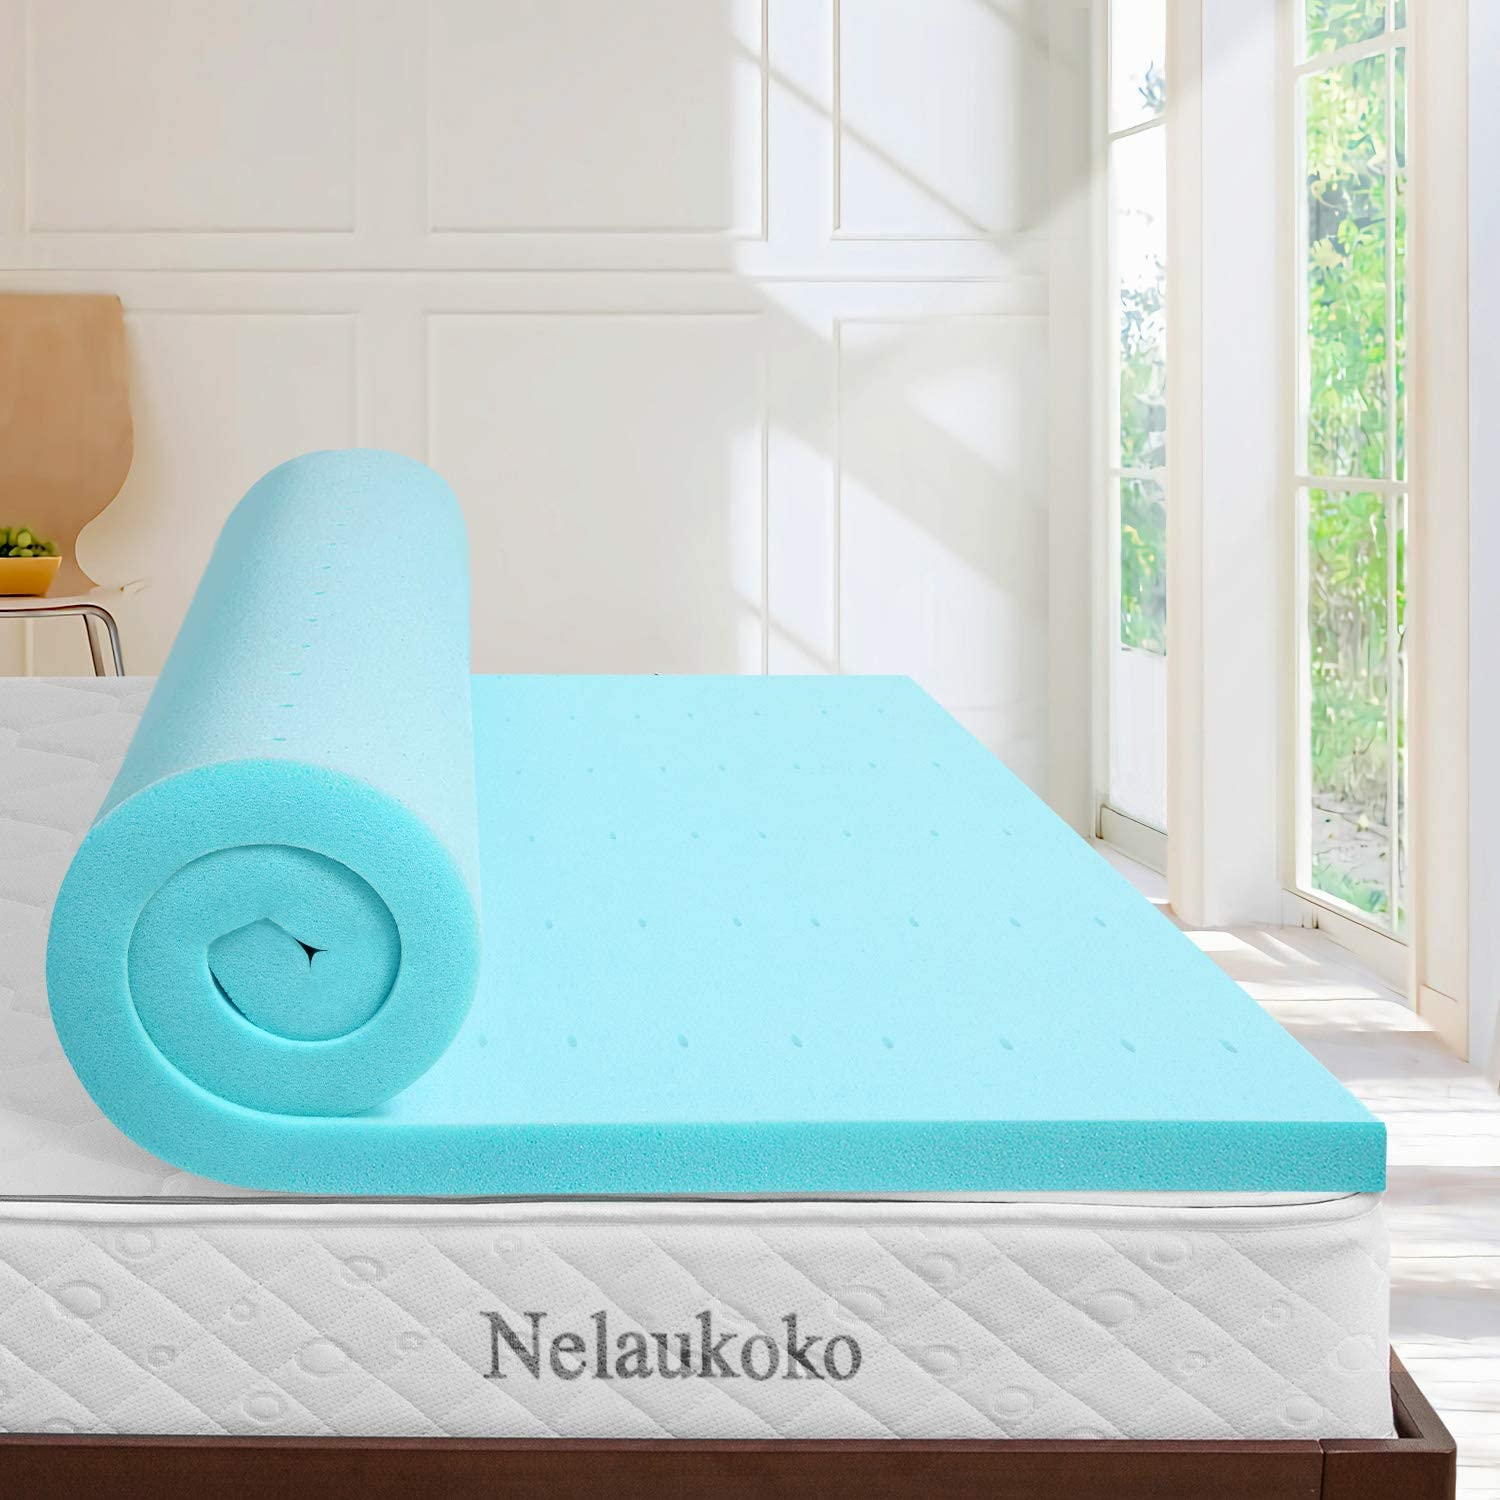 Nelaukoko 2 Inch Full Size Memory Foam Mattress Pad, Gel-Infused Double Bed Topper